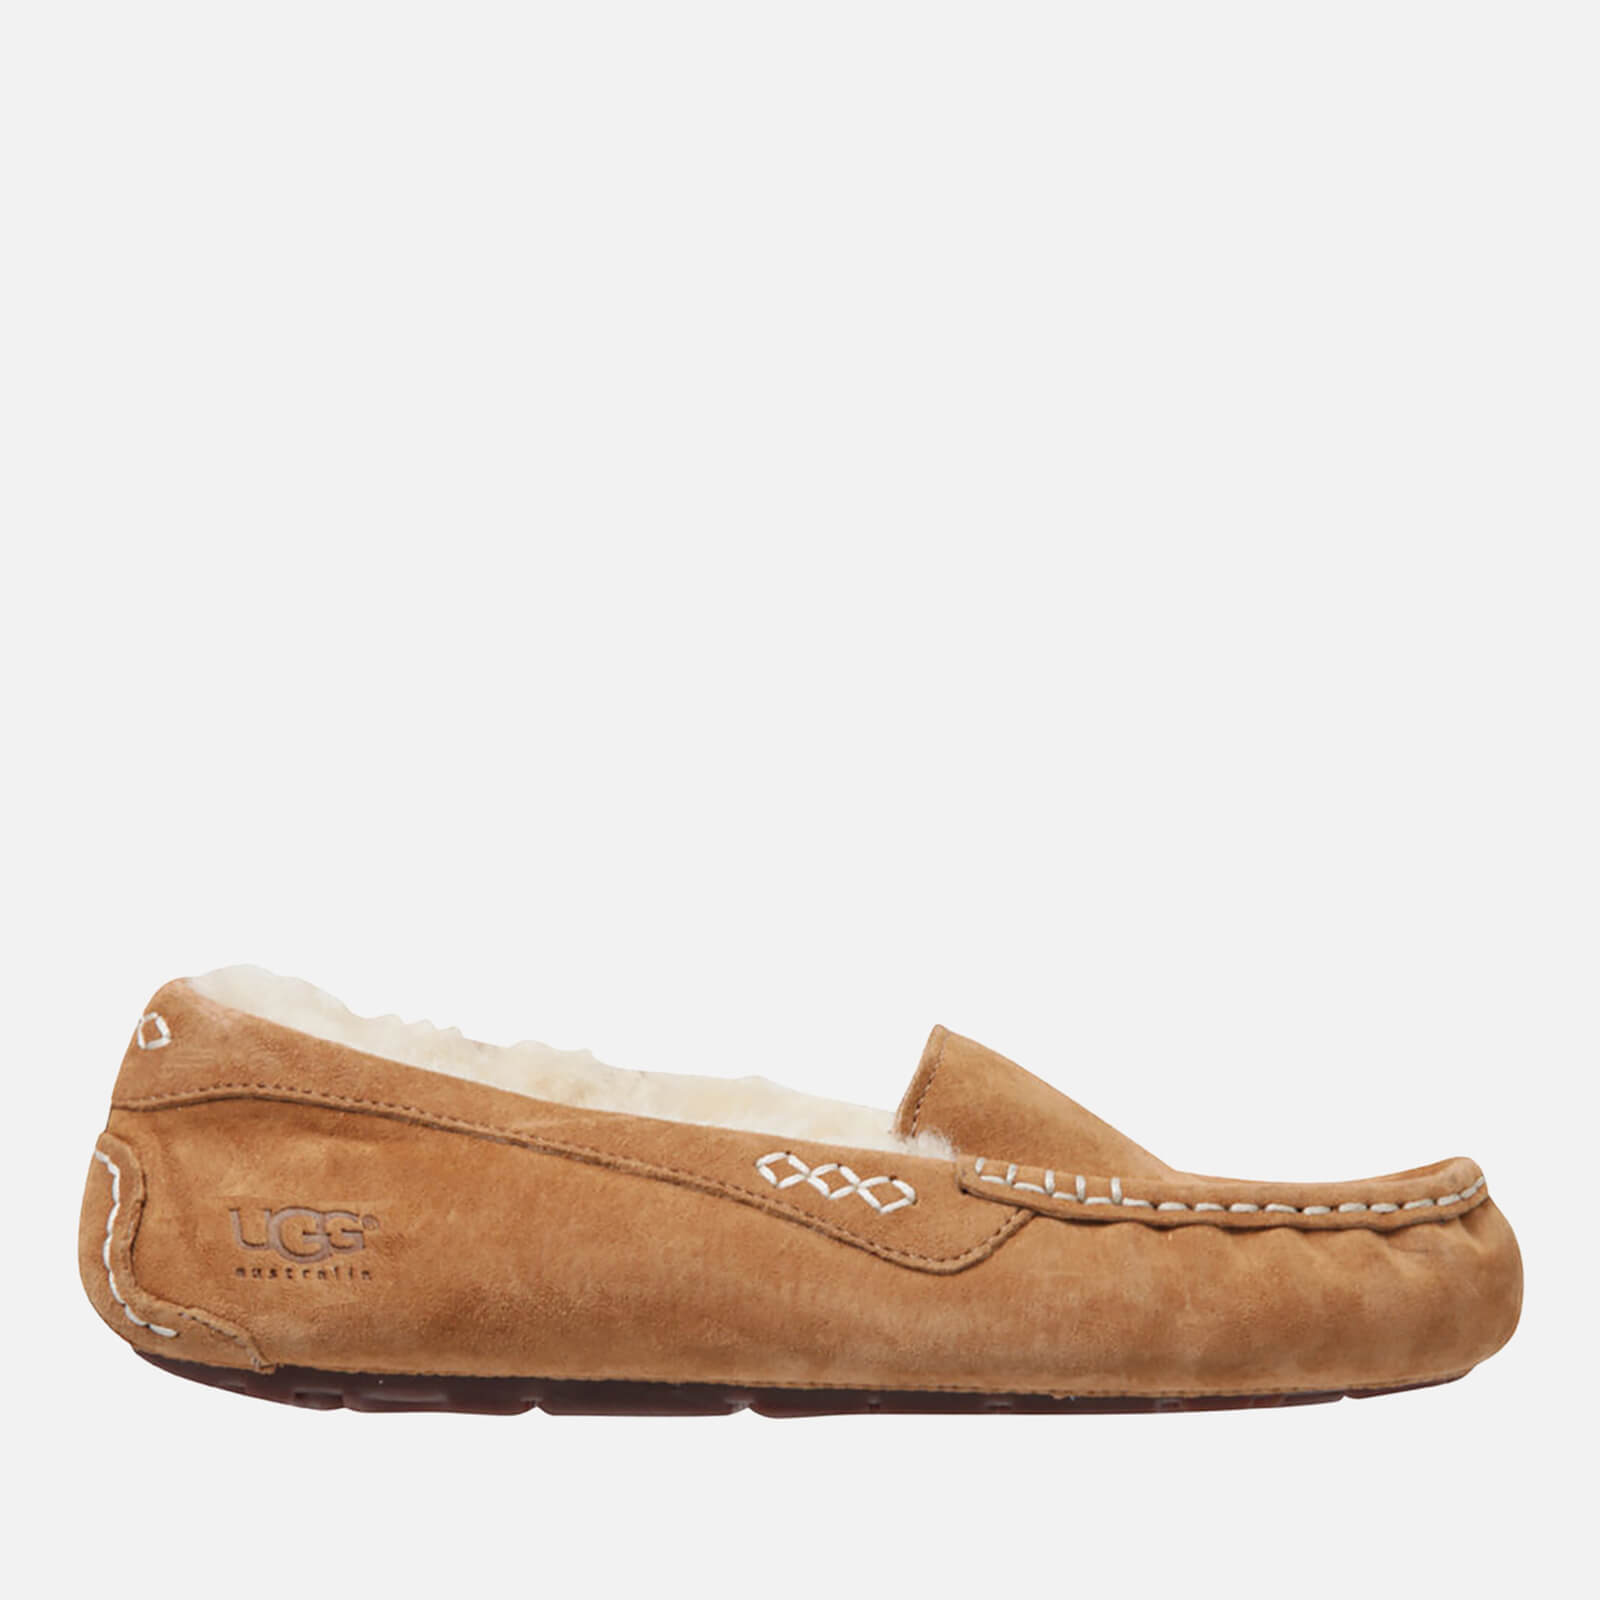 8d4fc4c6a UGG Women's Ansley Moccasin Suede Slippers - Chestnut - Free UK Delivery  over £50